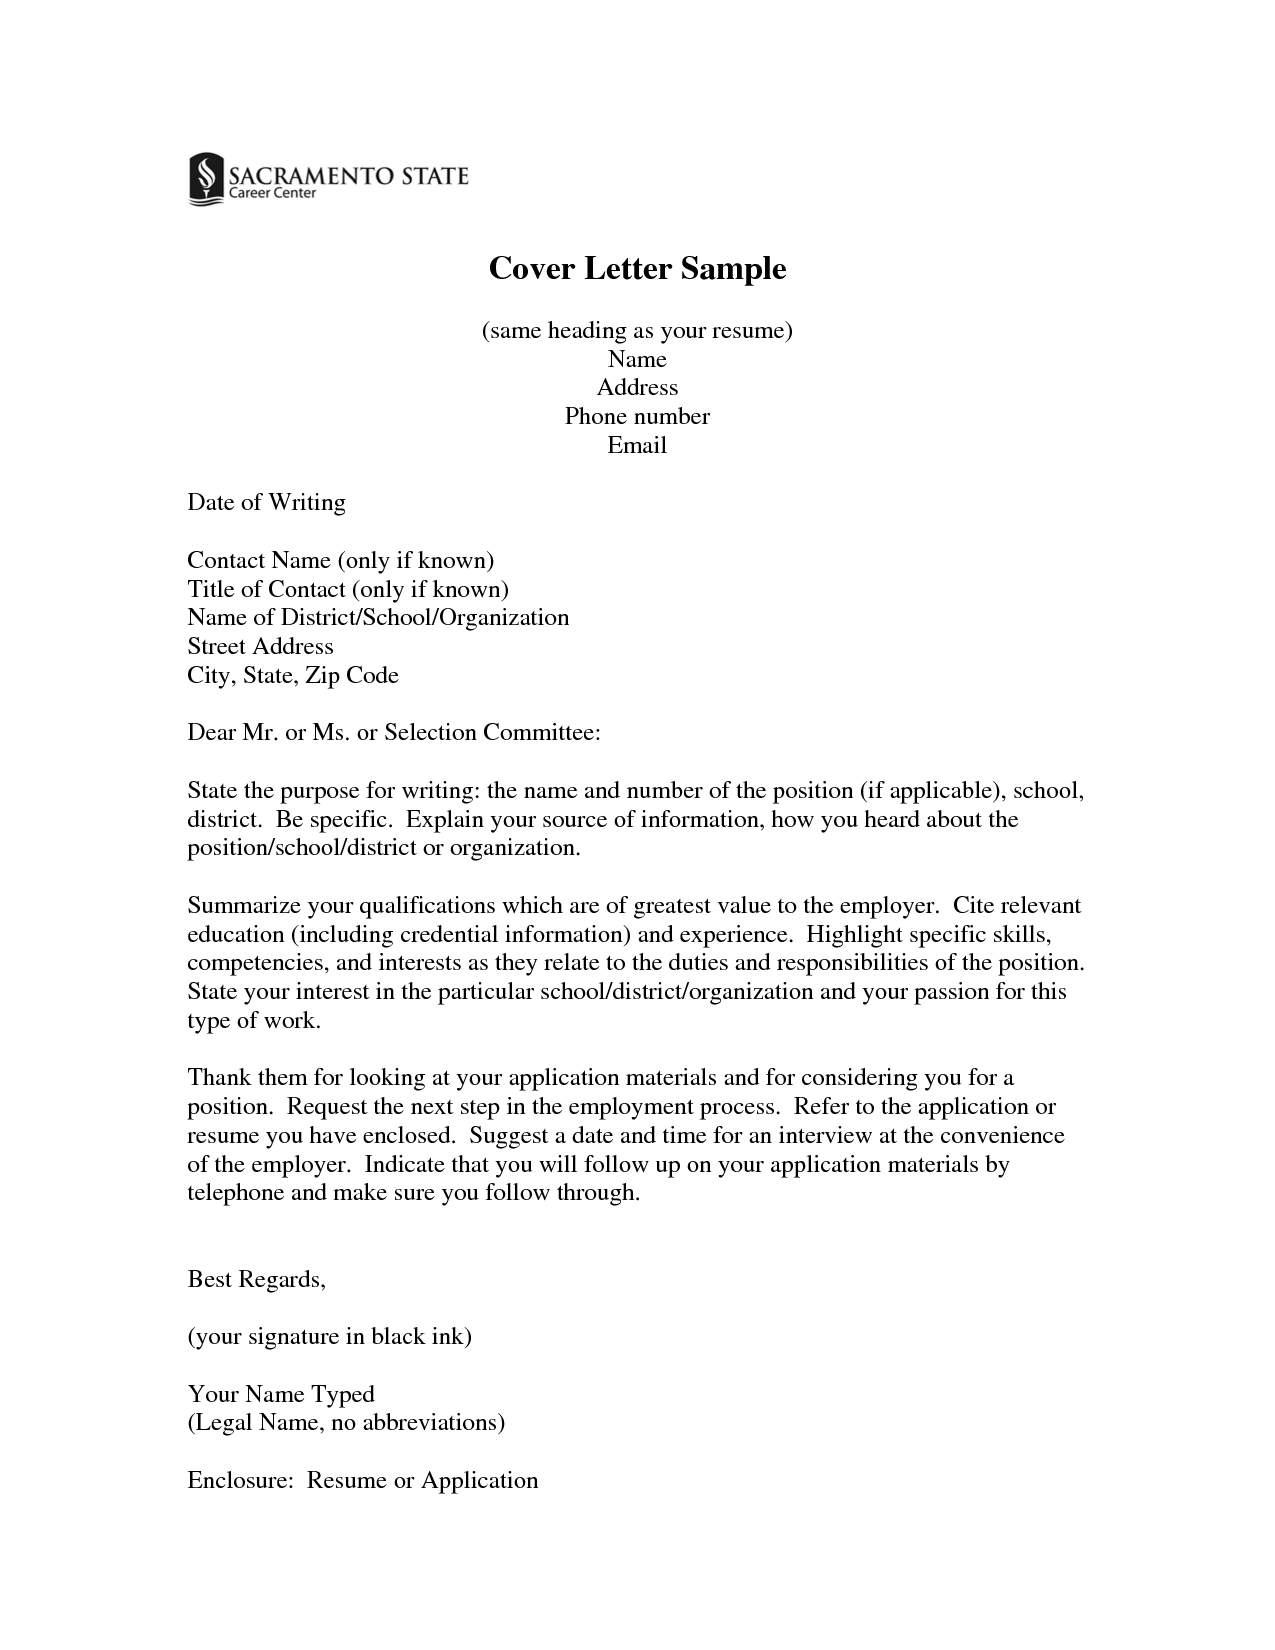 resume cover letter template same cover letters for resume cover letter sample same 24331 | 094eff7f90568c56806453f908e2763b